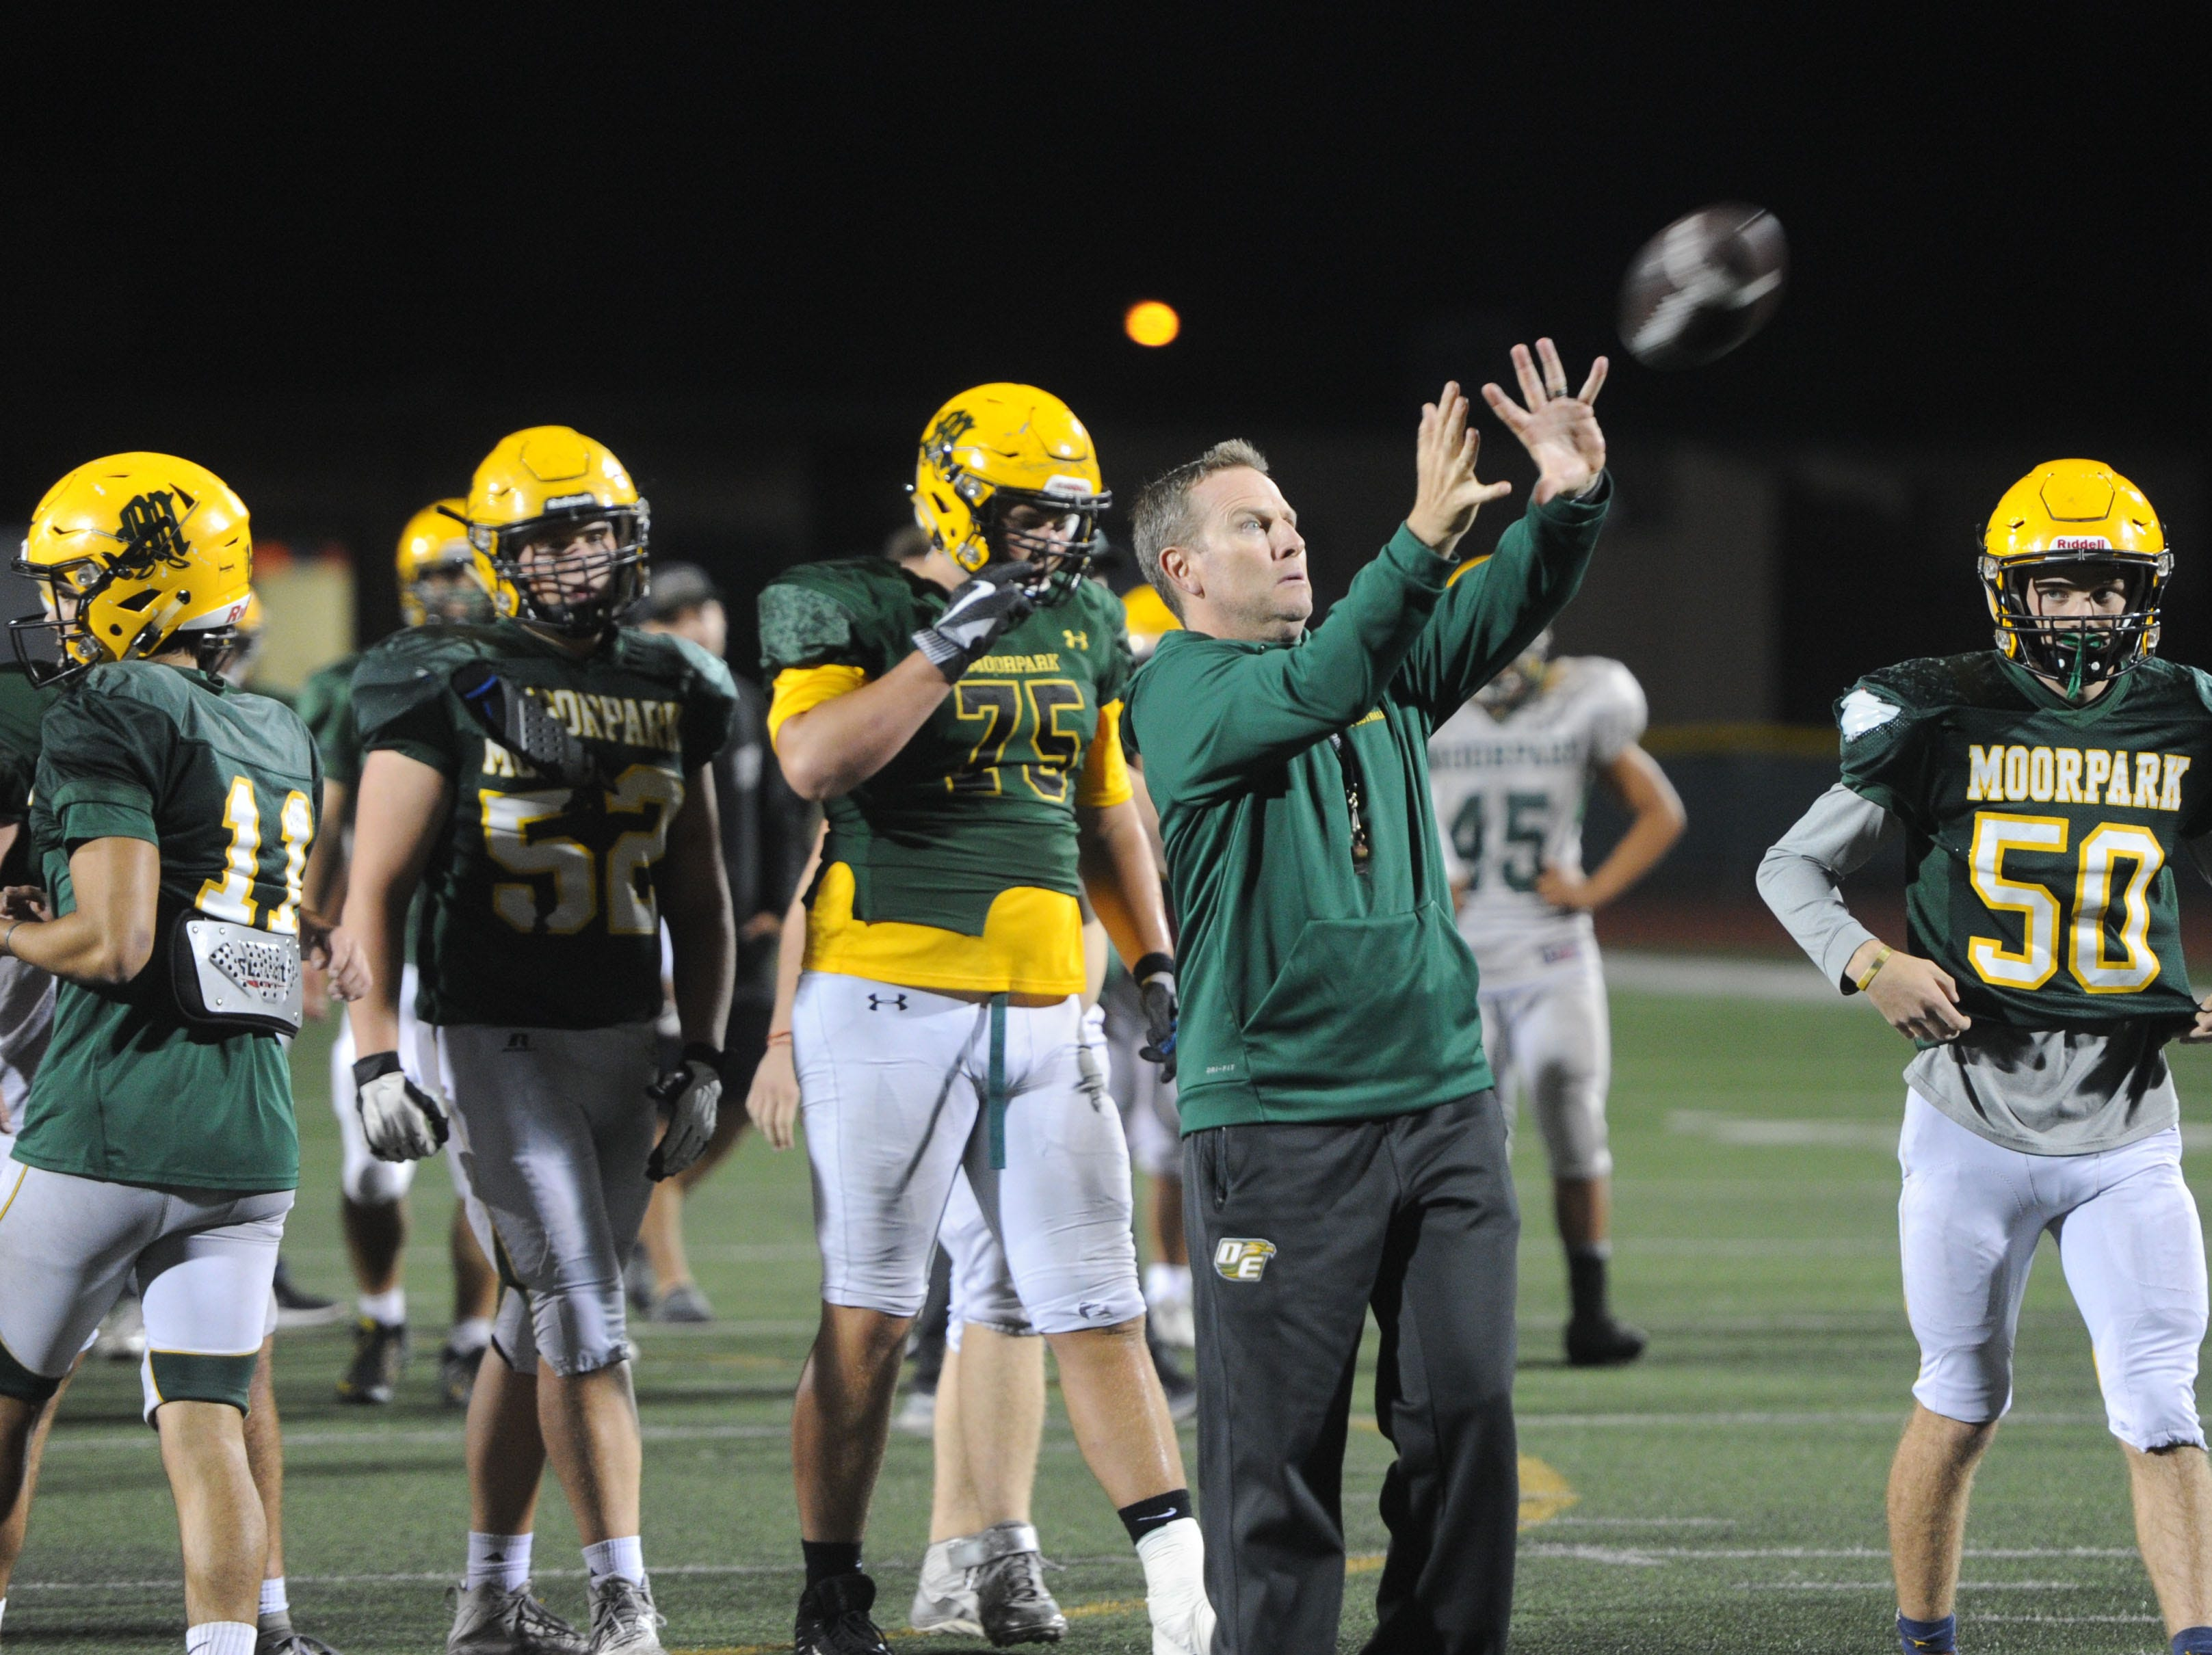 Head coach Ryan Huisenga catches the ball during Moorpark's practice Wednesday. The Musketeers host Sierra Canyon in a Division 3 quarterfinal game Friday night.